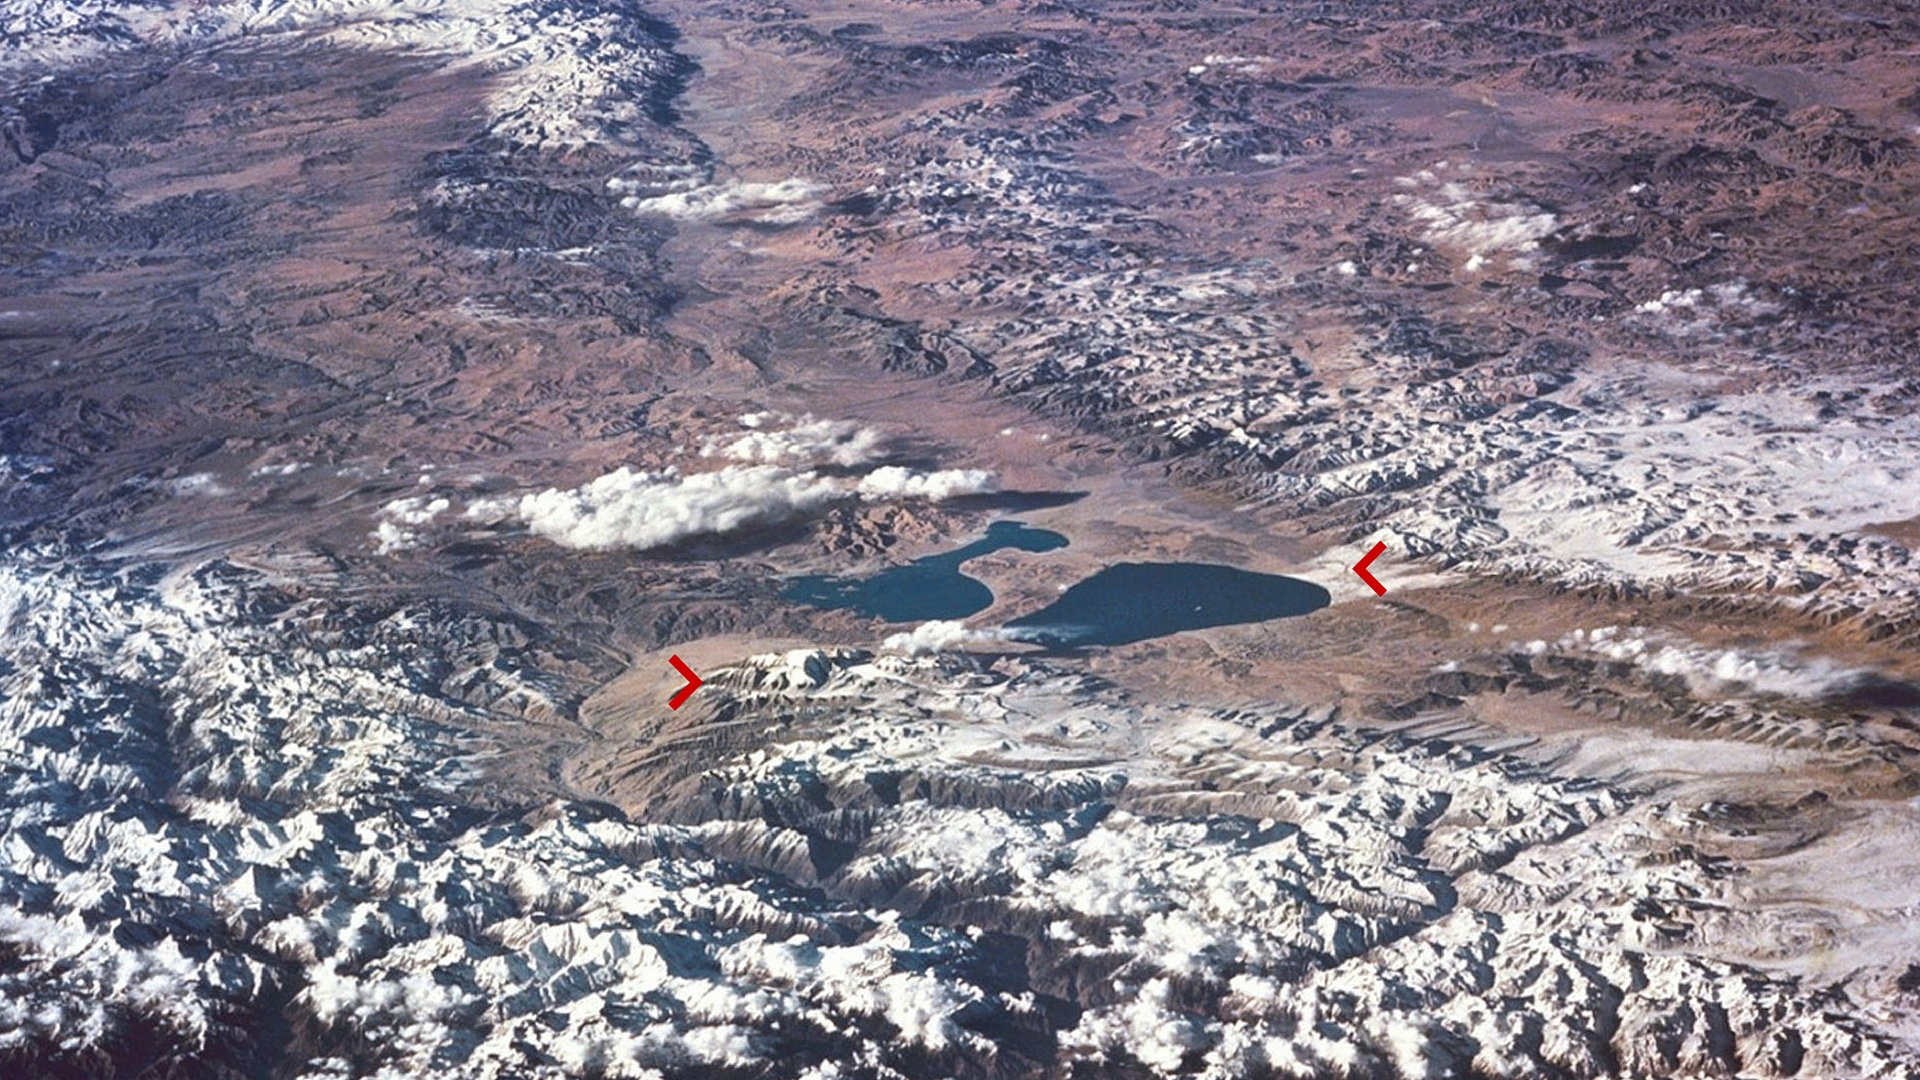 Kailash and Manasarovar Lake from Space